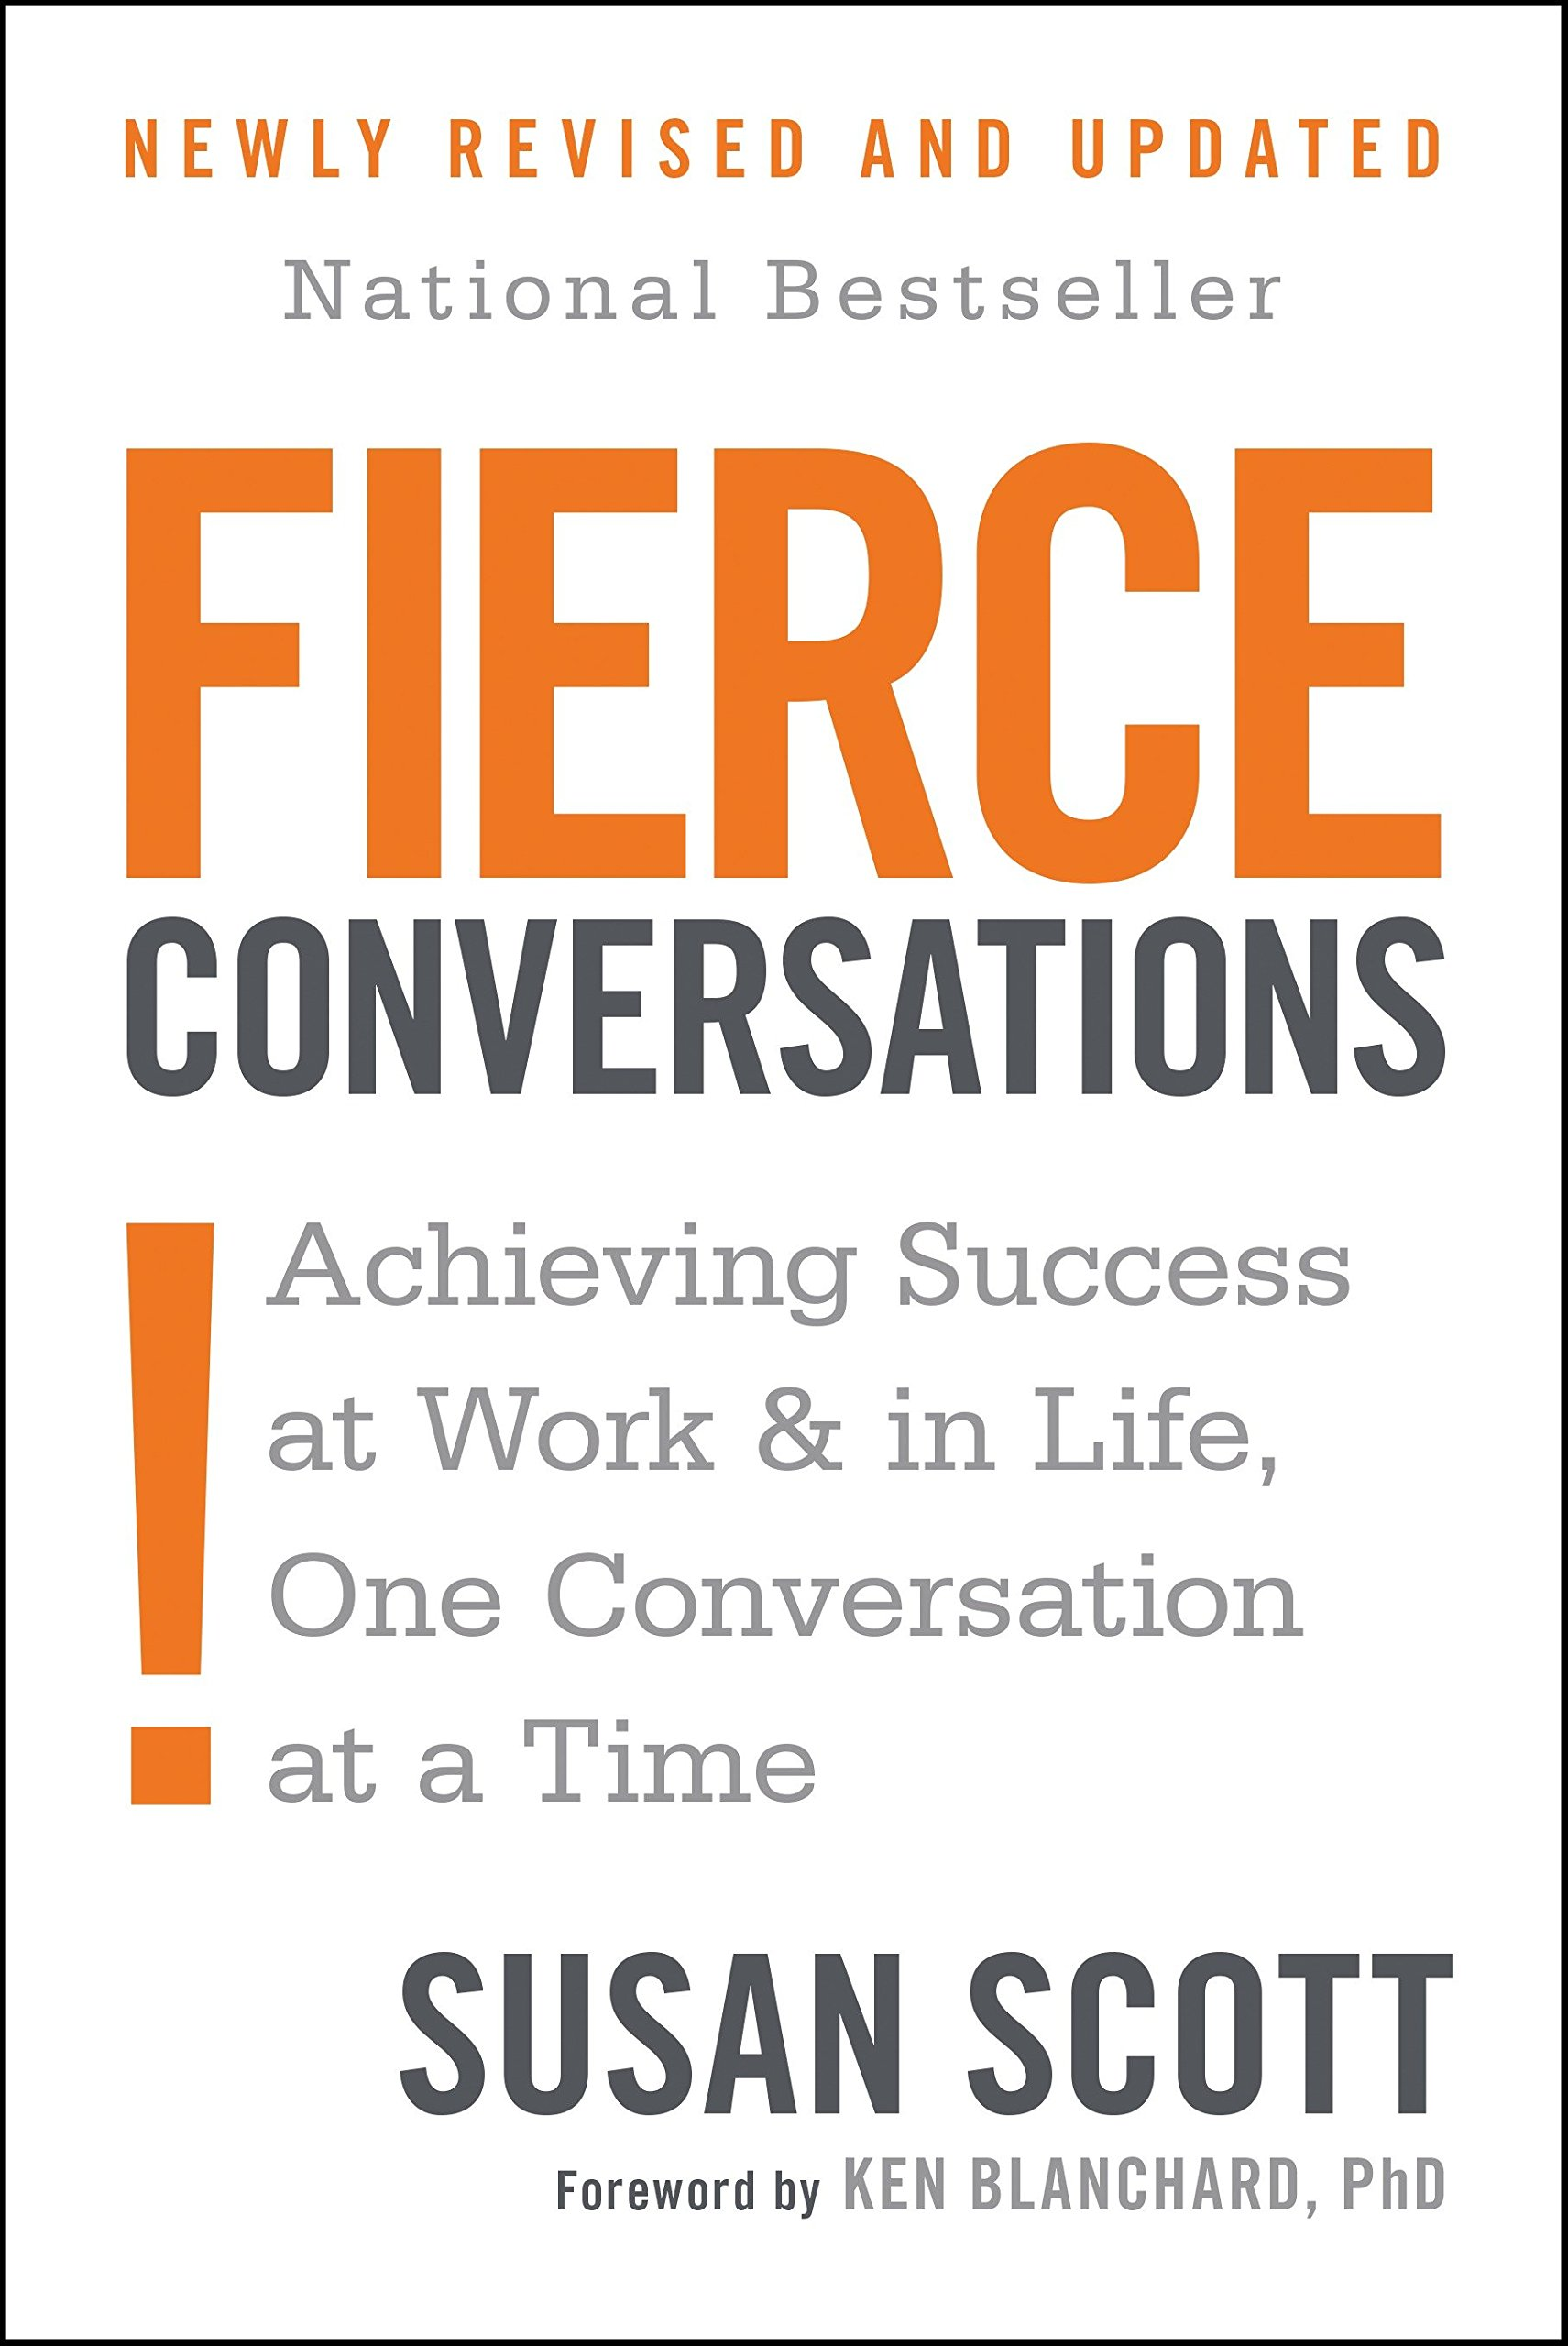 Fierce Conversations - By Susan Scott